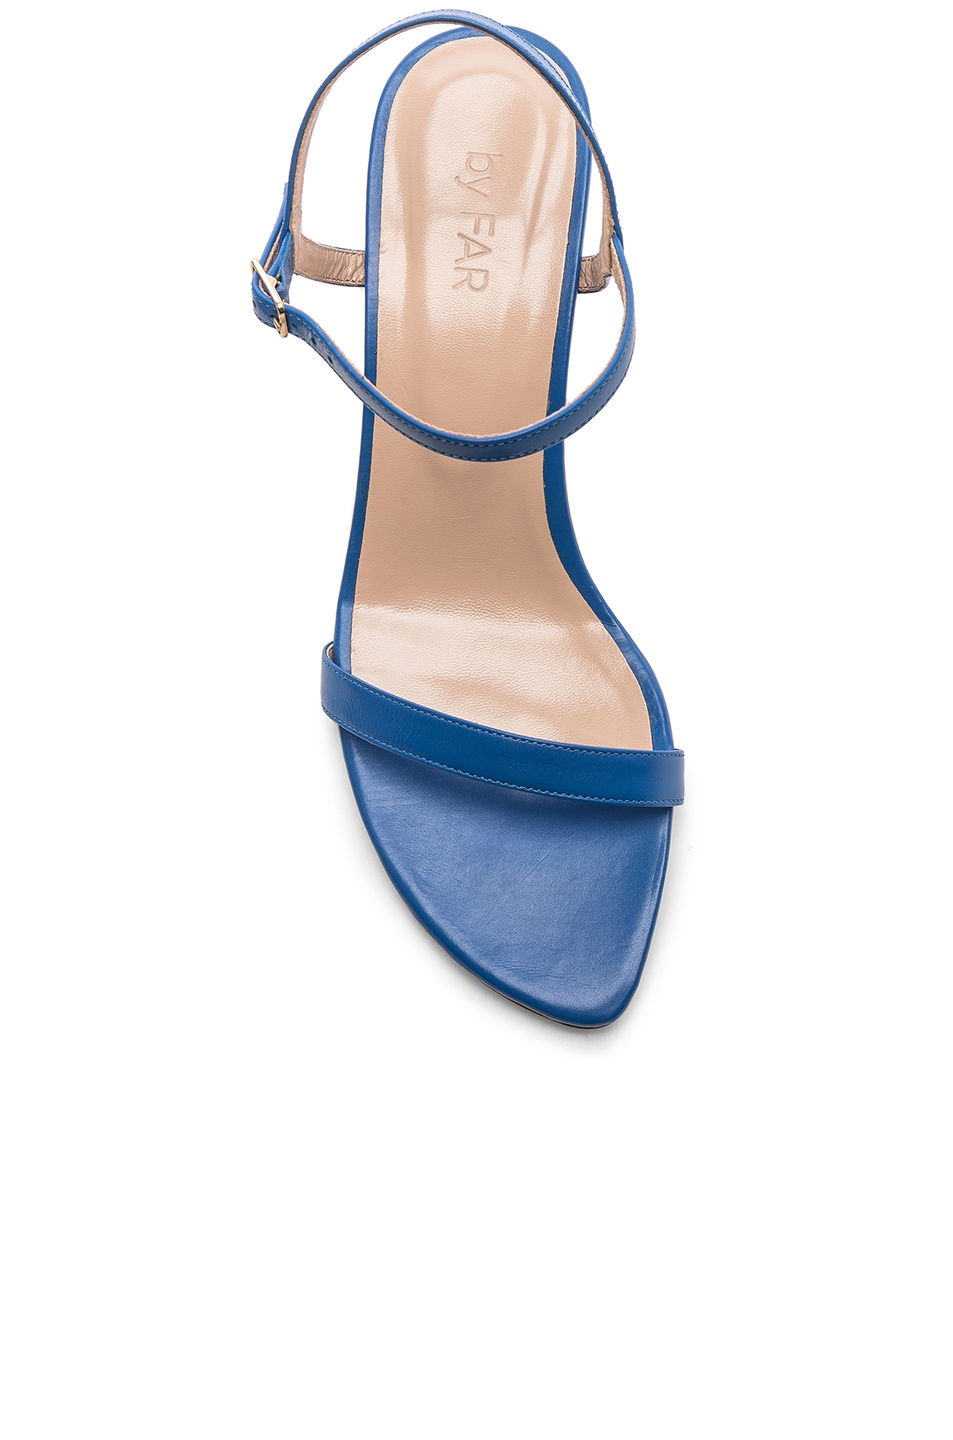 Image 4 of By Far Magnolia Sandal in Marine Blue Leather